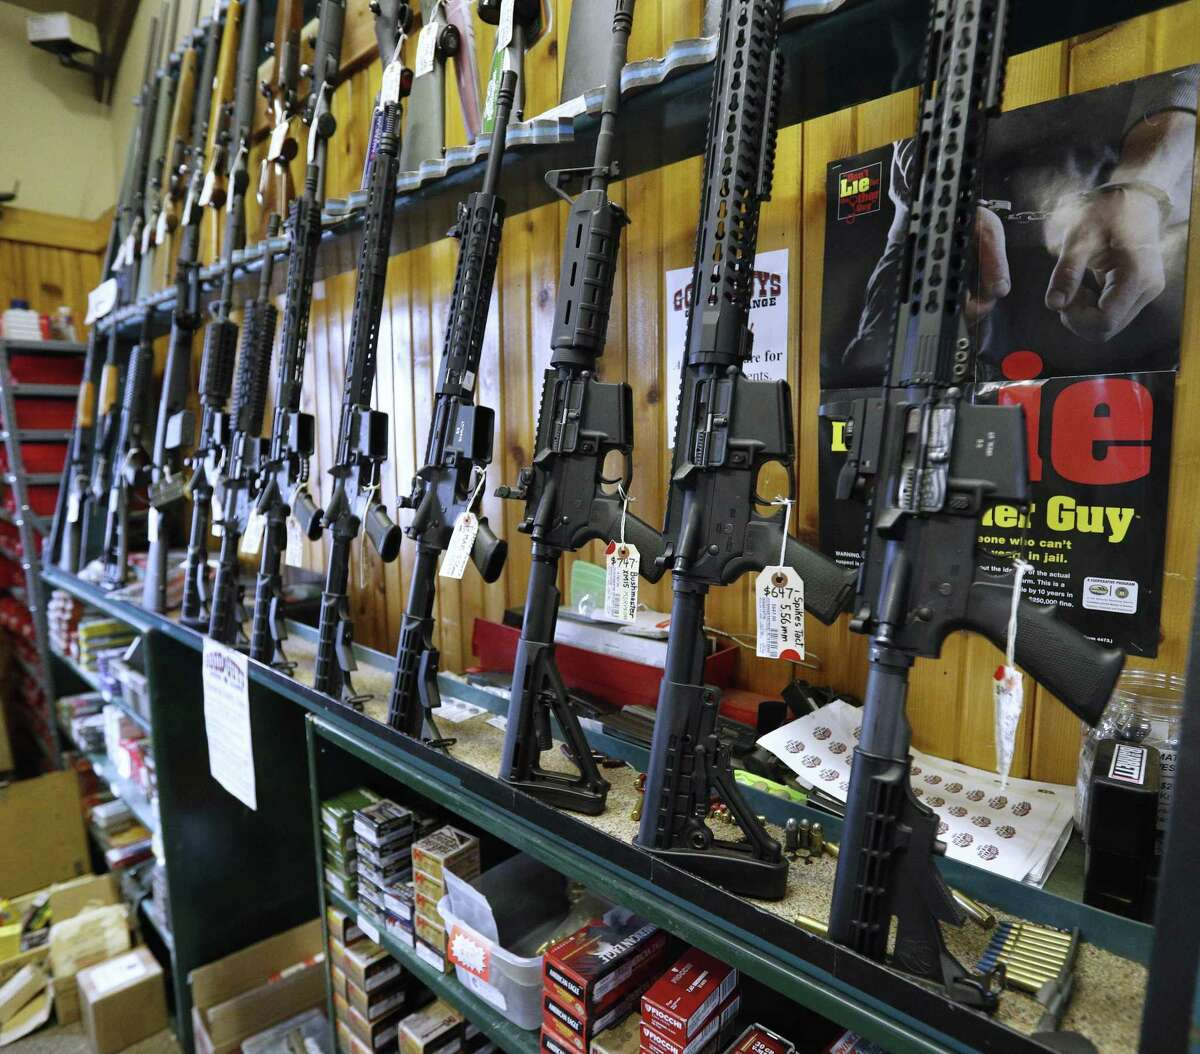 Semi-automatic AR-15's are for sale in Orem, Utah. In a Maryland case, the Supreme Court refused to hear a legal challenge to the state's ban on military style assault weapons.